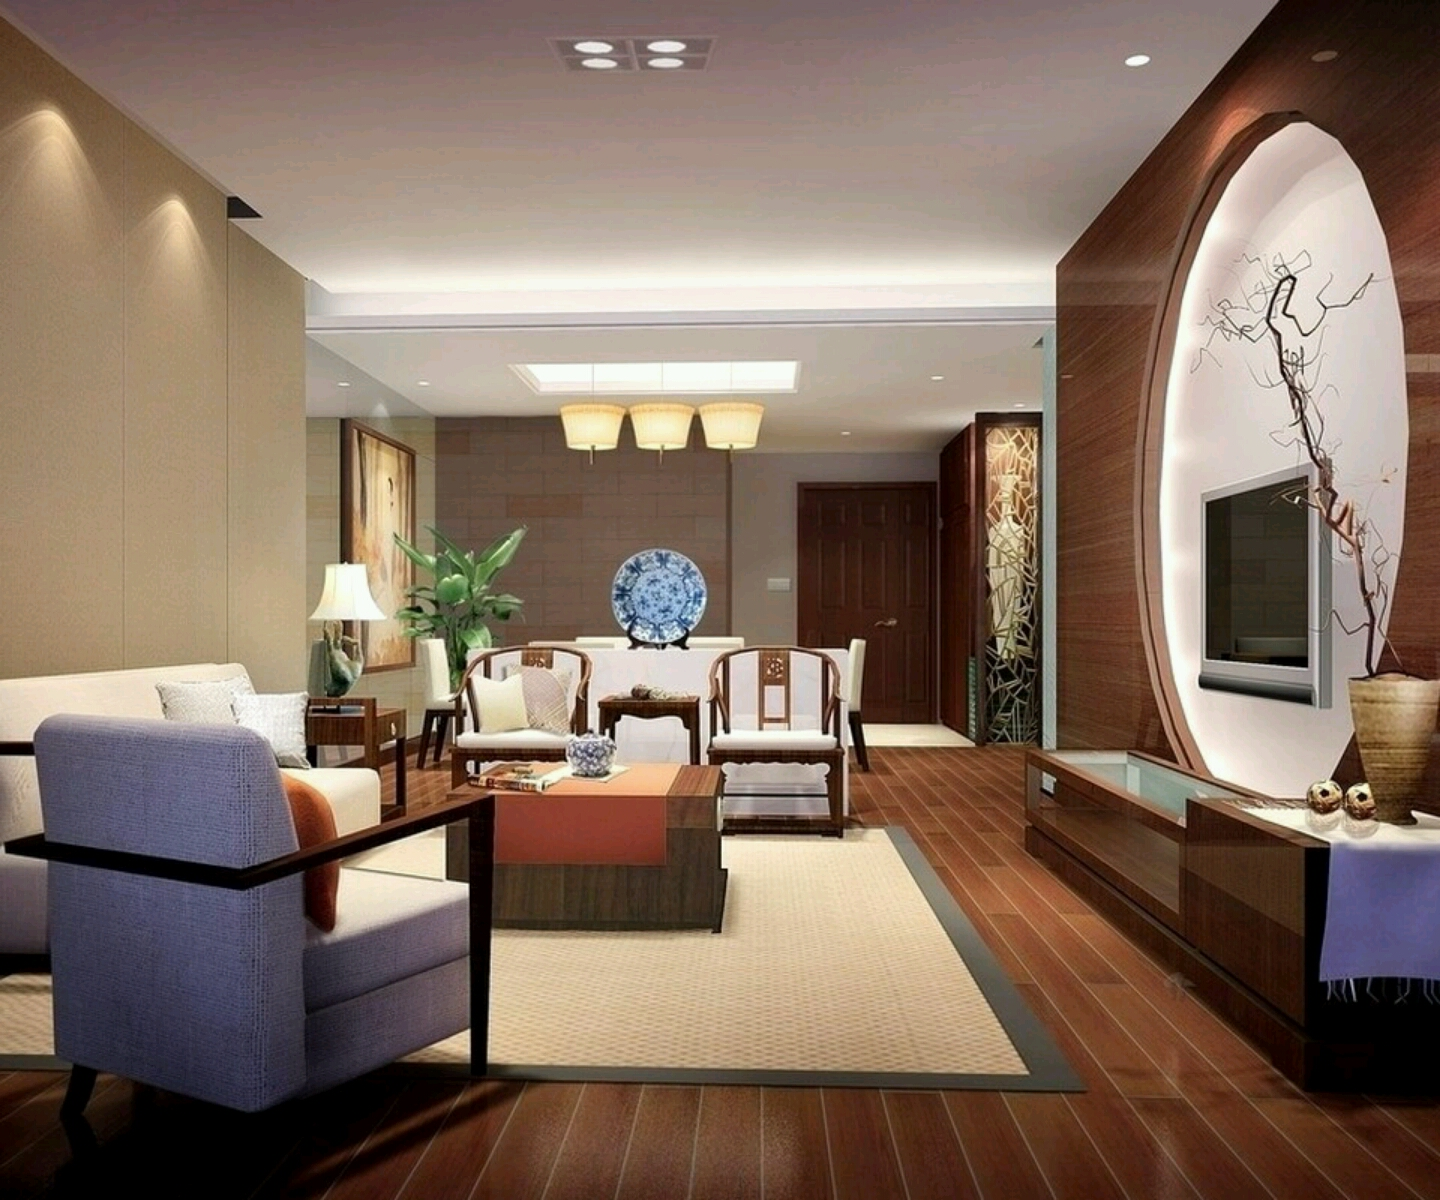 Luxury homes interior decoration living room designs ideas for Living room interior ideas